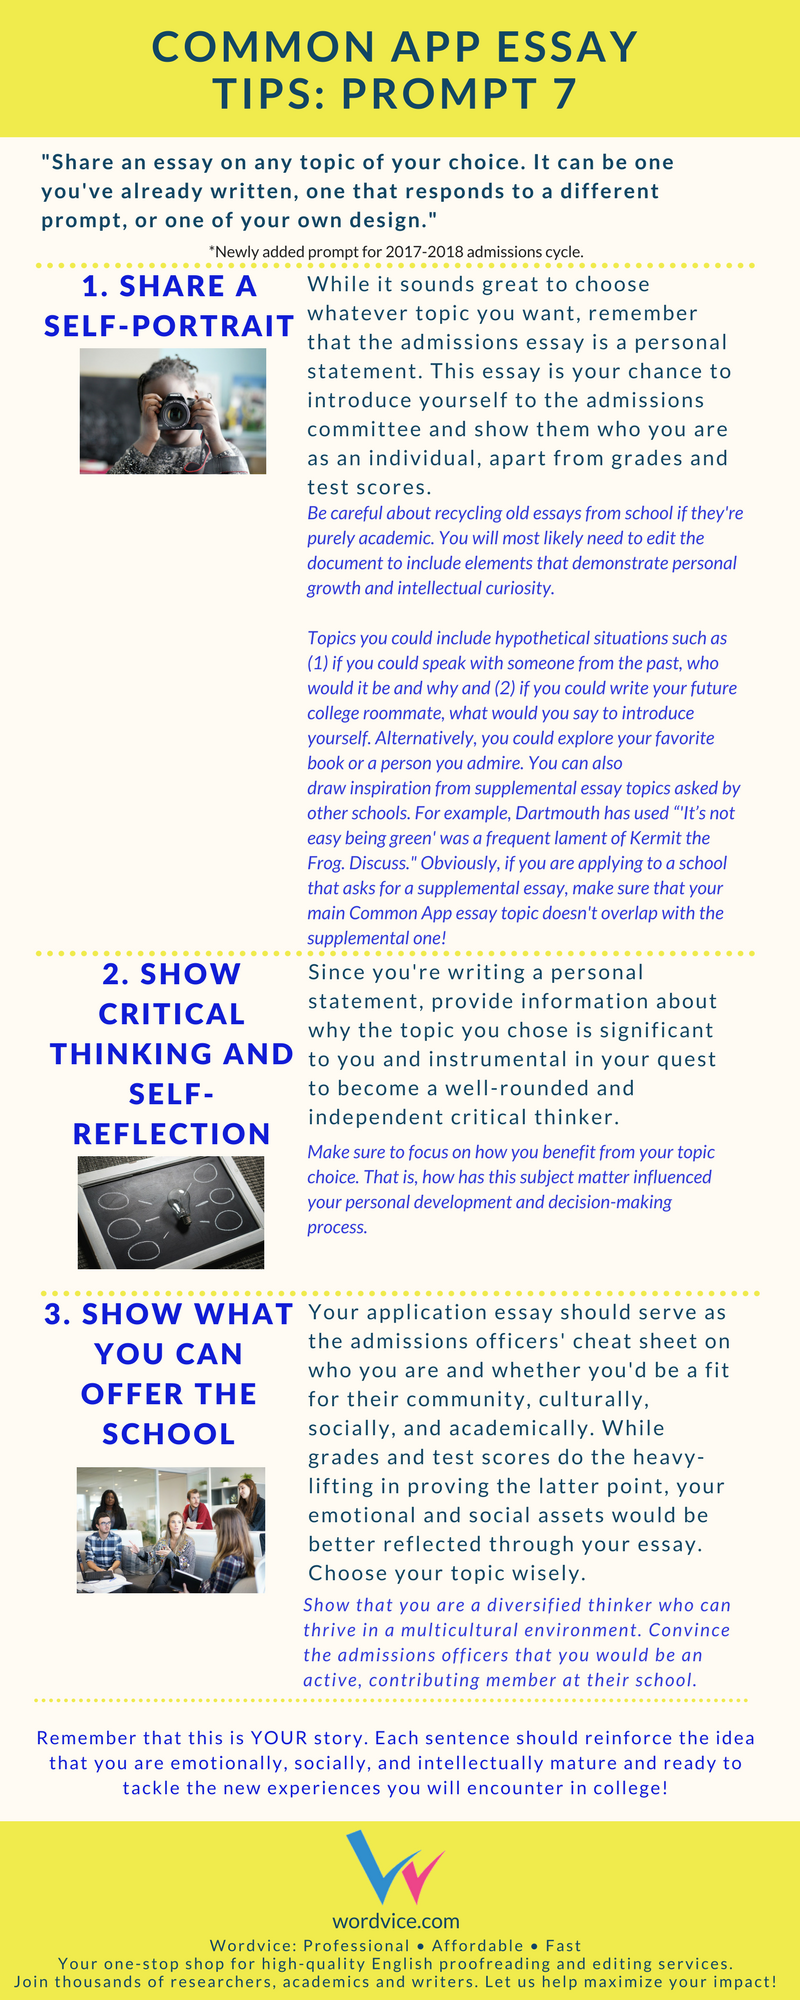 006 Common Application Essay Prompts App Brainstormprompt Imposing 2017 Examples Prompt 6 2015 Full